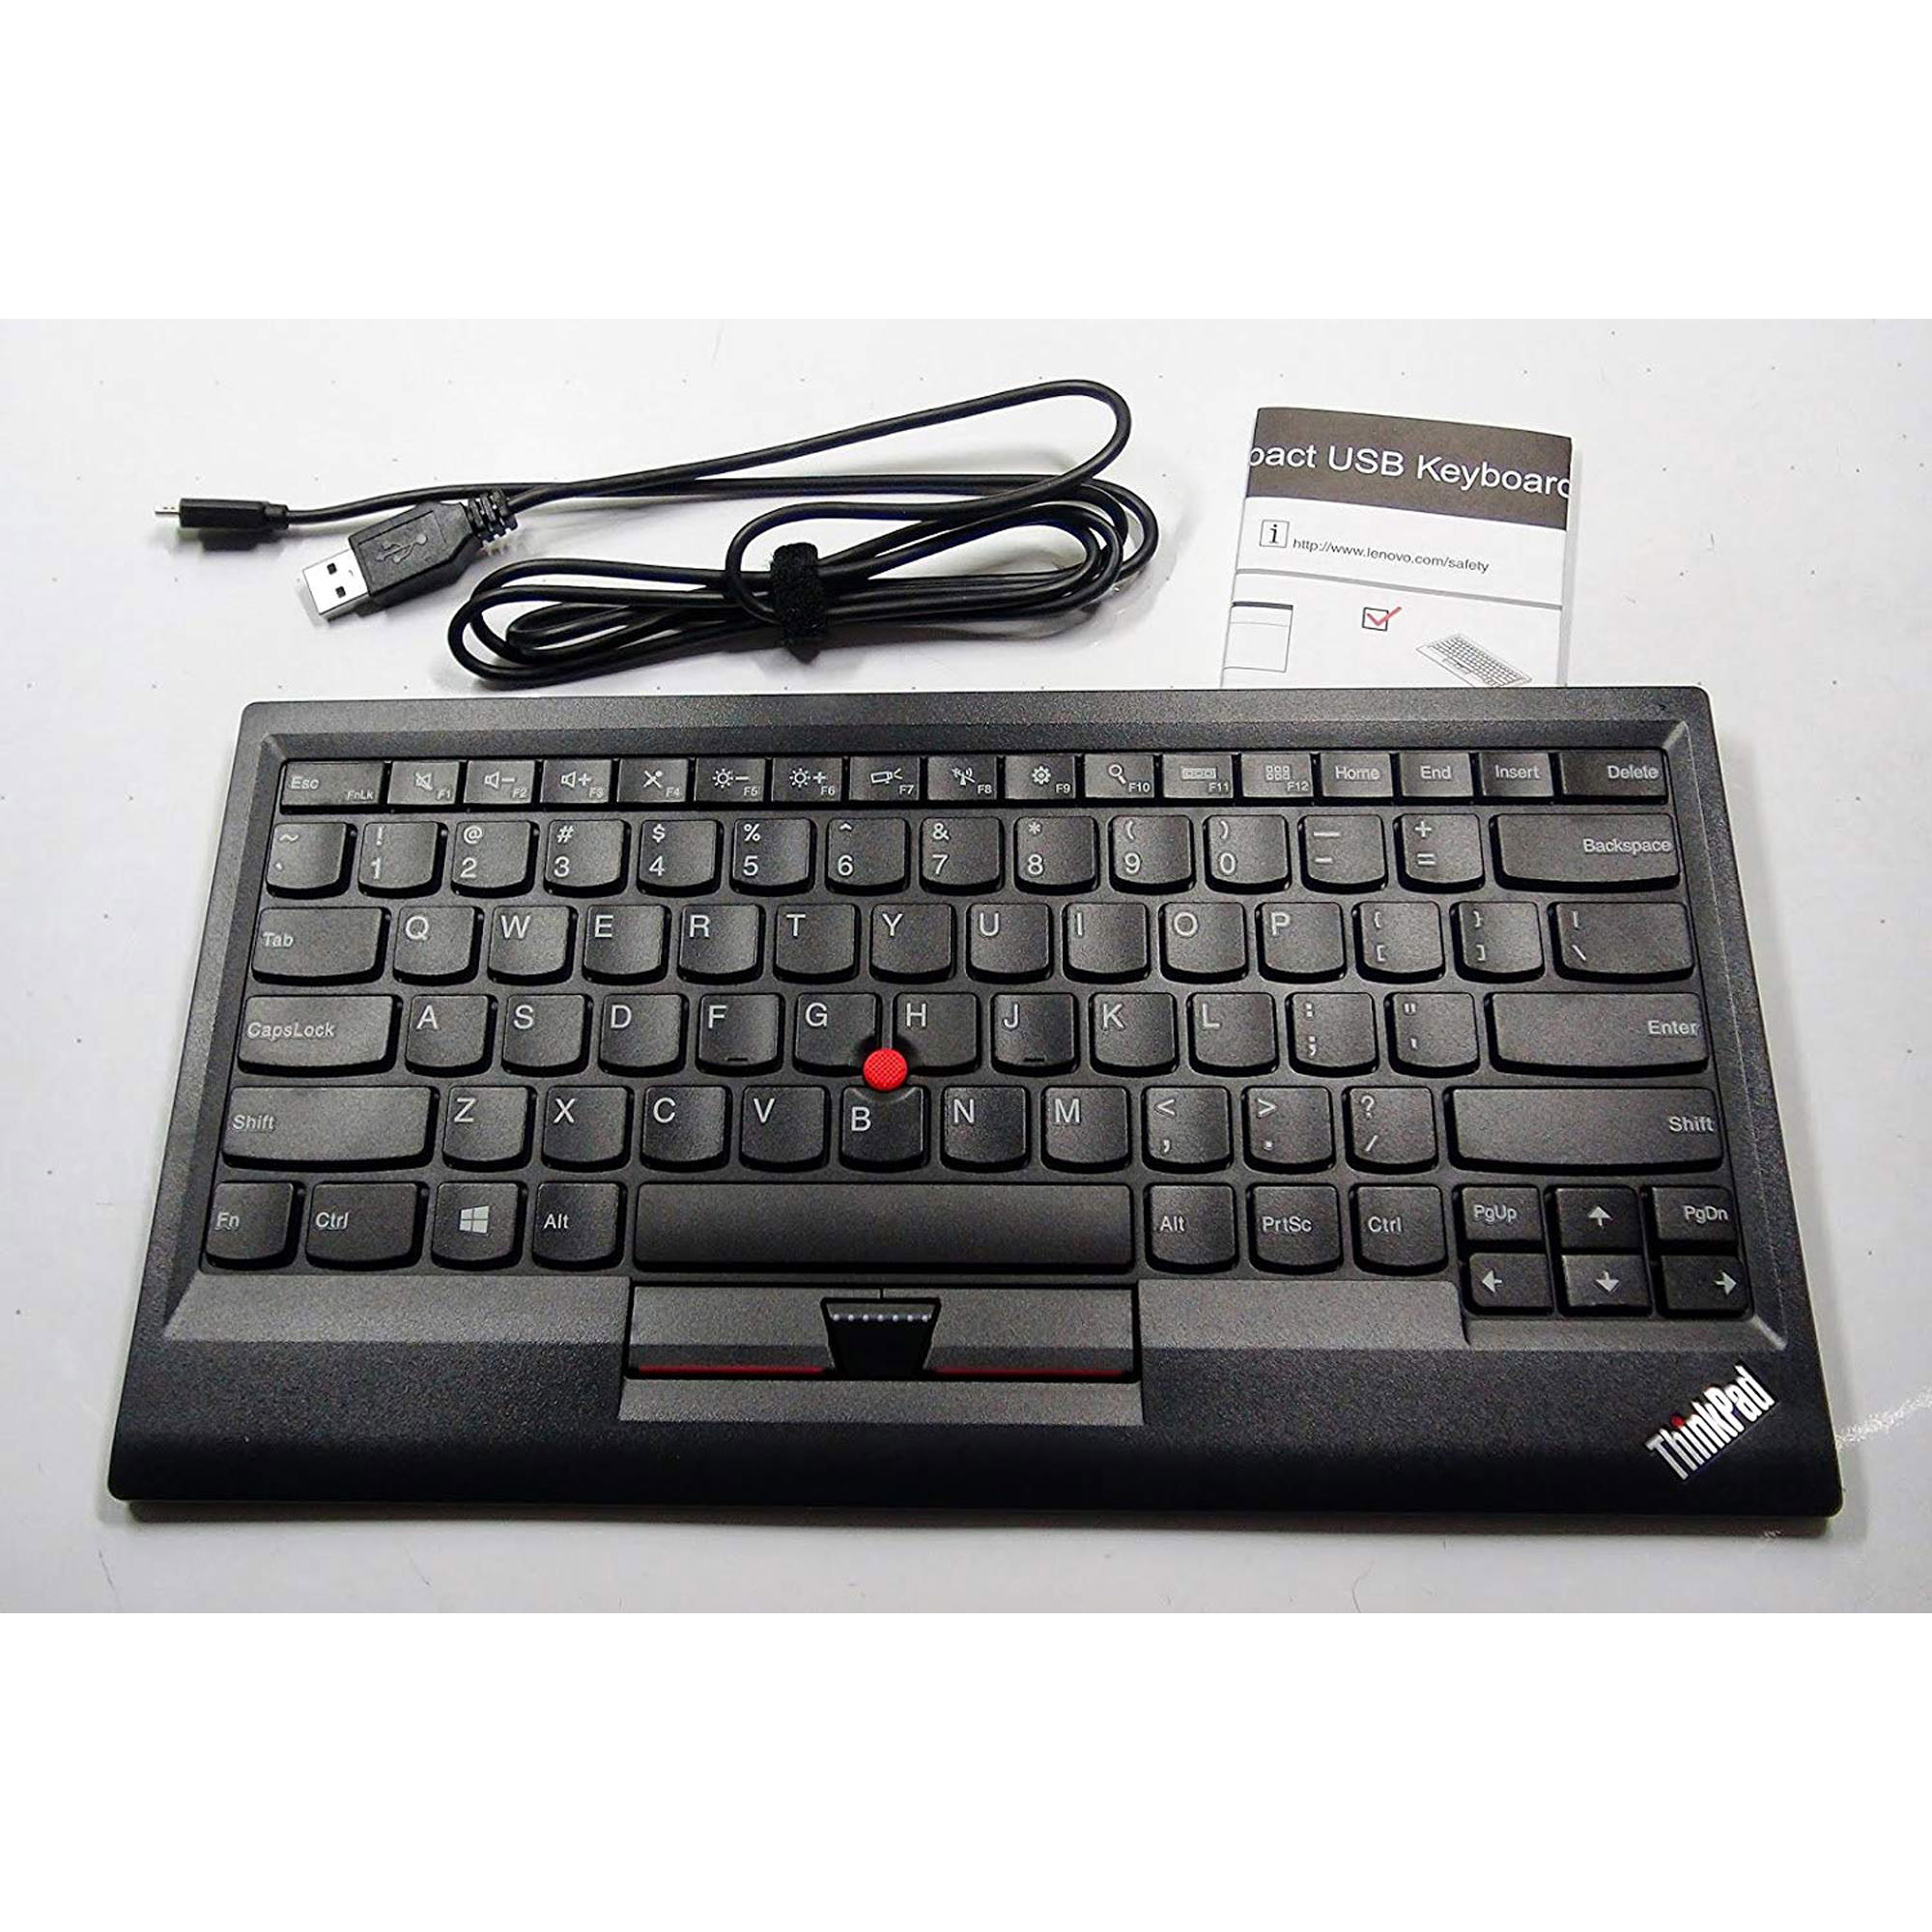 Lenovo ThinkPad Wired USB Keyboard with TrackPoint